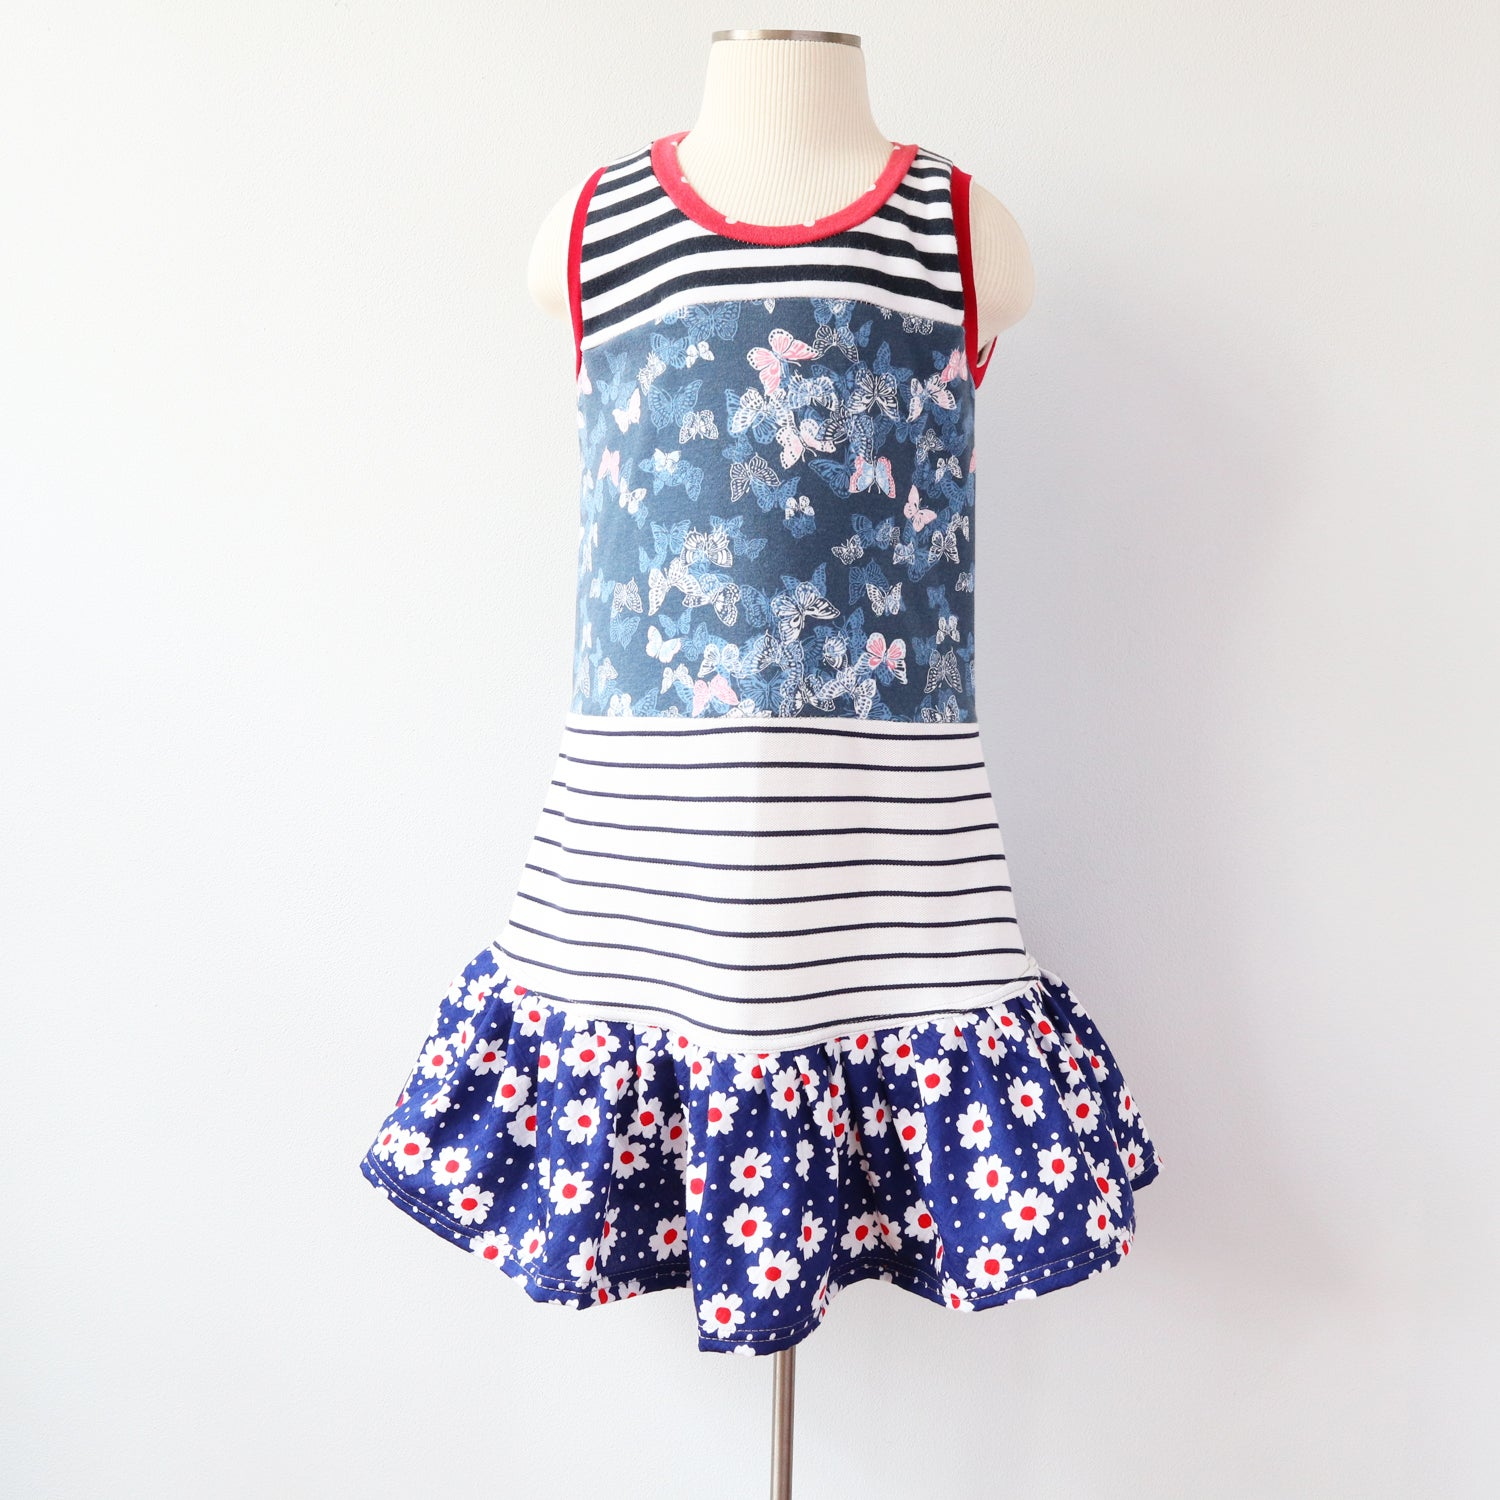 Image of daisy butterfly stripe vintage fabric upcycled 4/5 courtneycourtney tank shift dress red white blue